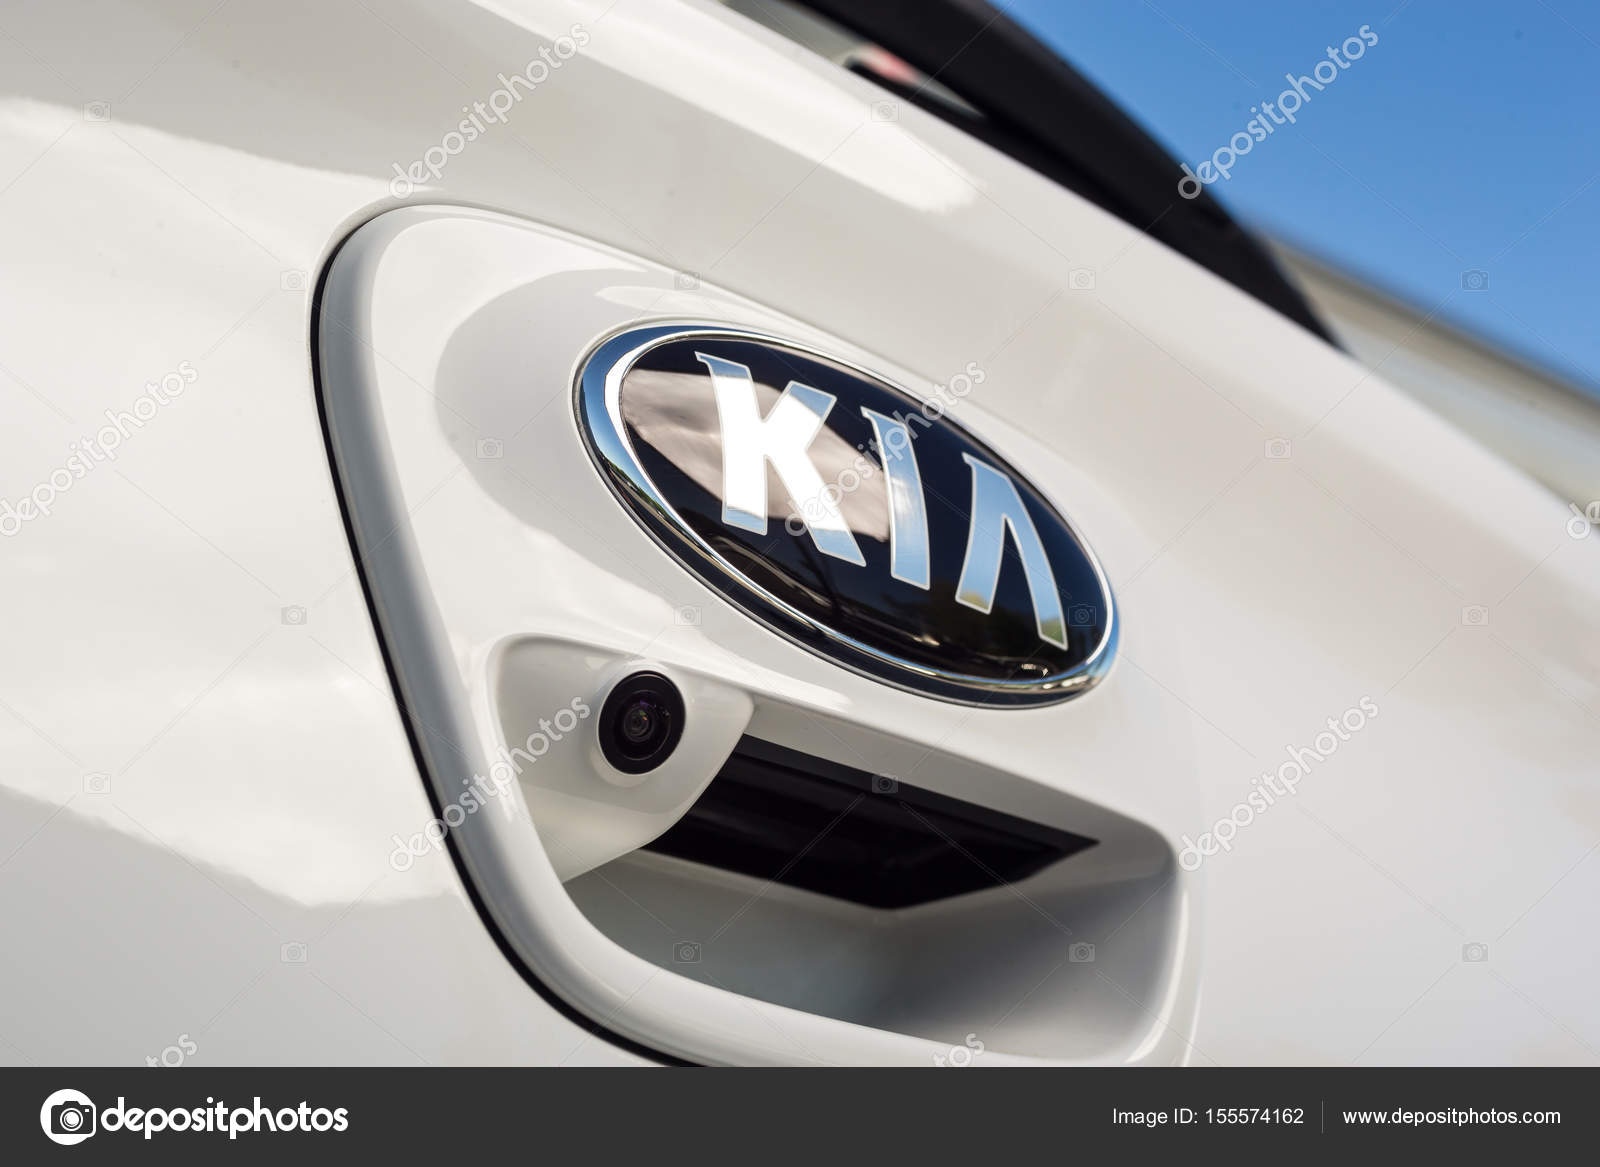 is carcostcanada gallery sx logo buyers car road serious kia review contender as door the pulls test goes far into rio news segment a of new droves south subcompact